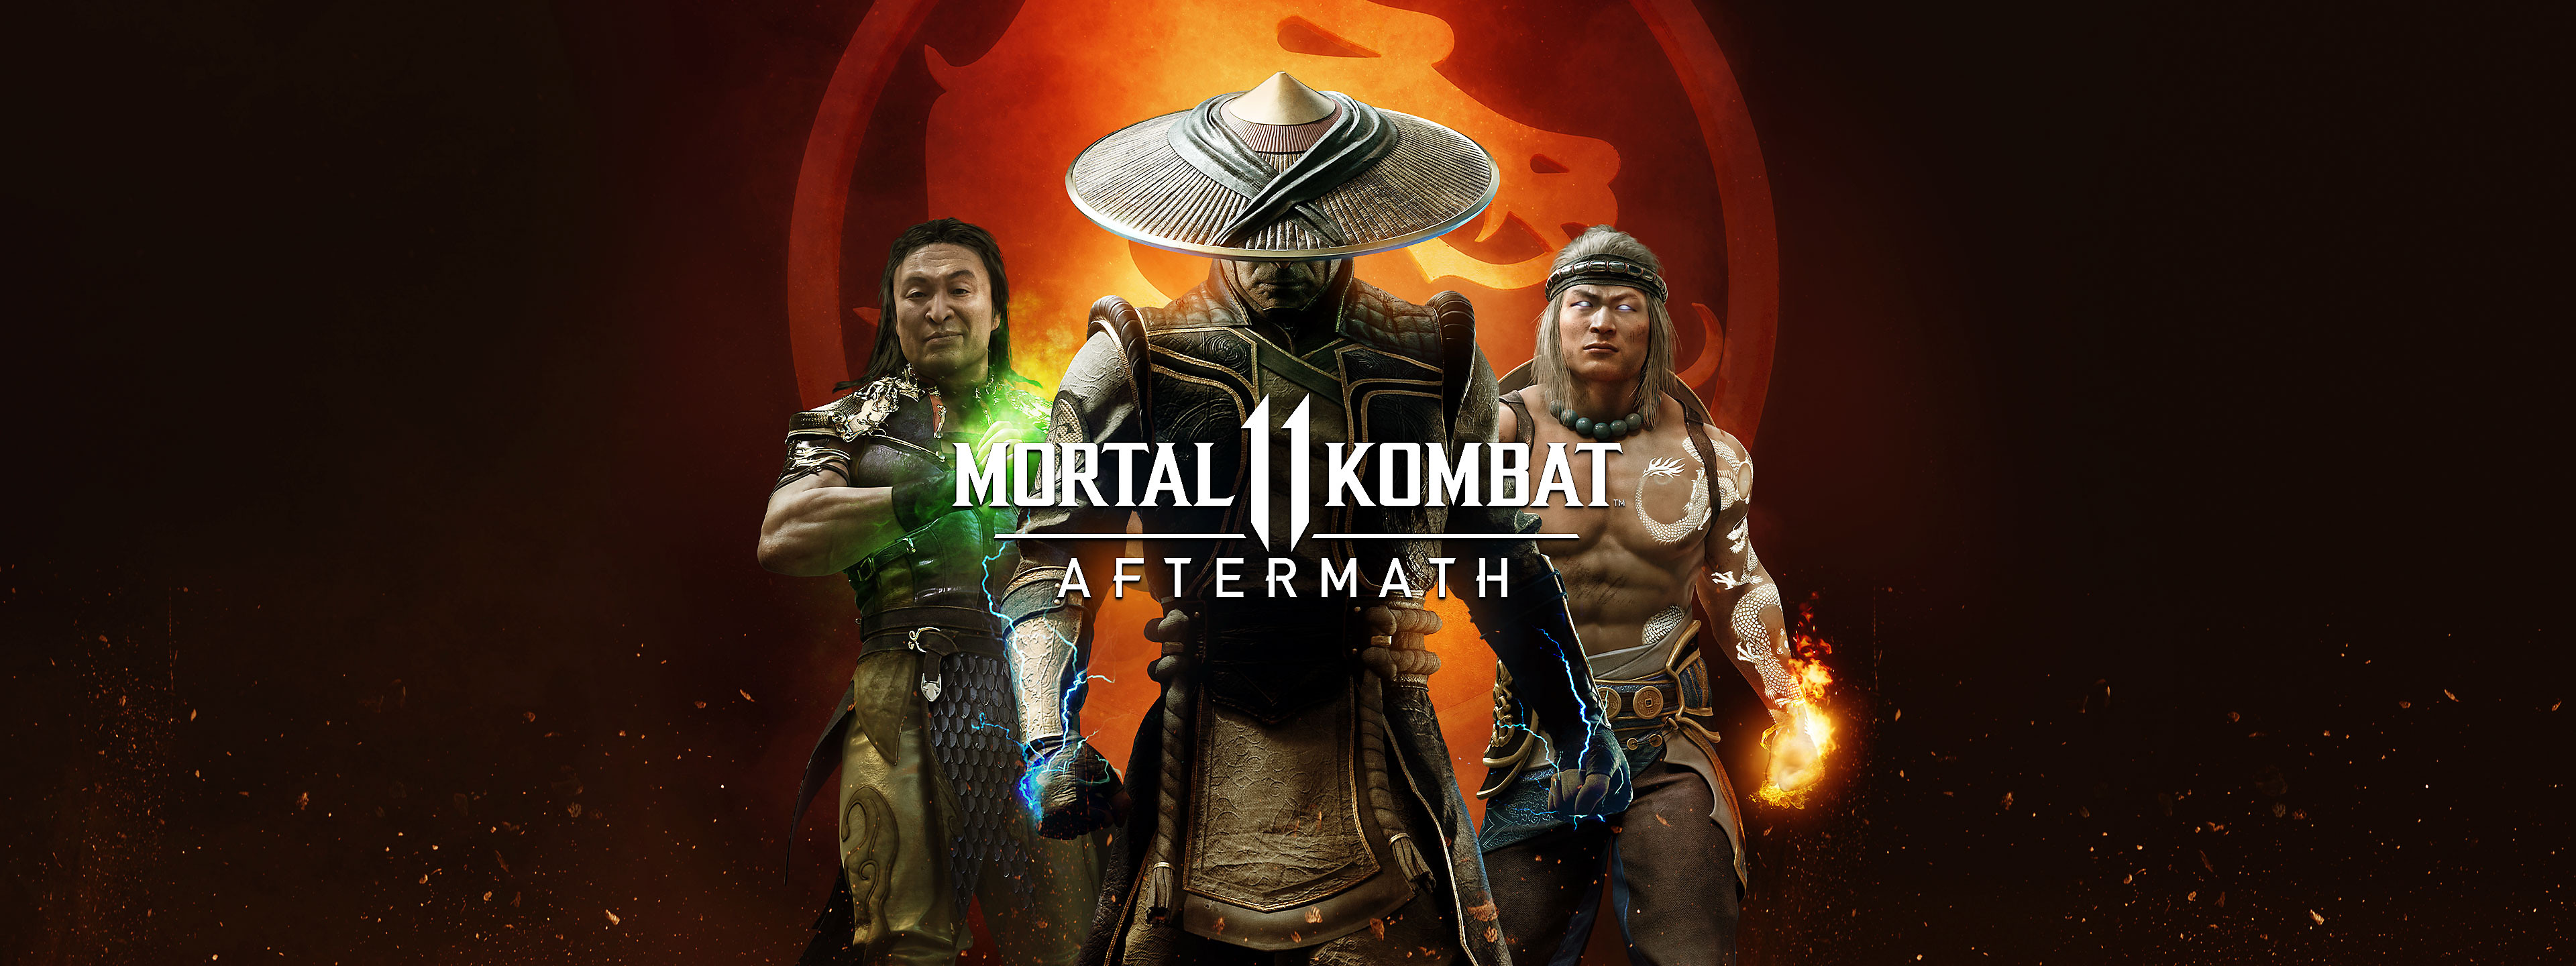 Mortal Kombat 11: Aftermath - Now Available